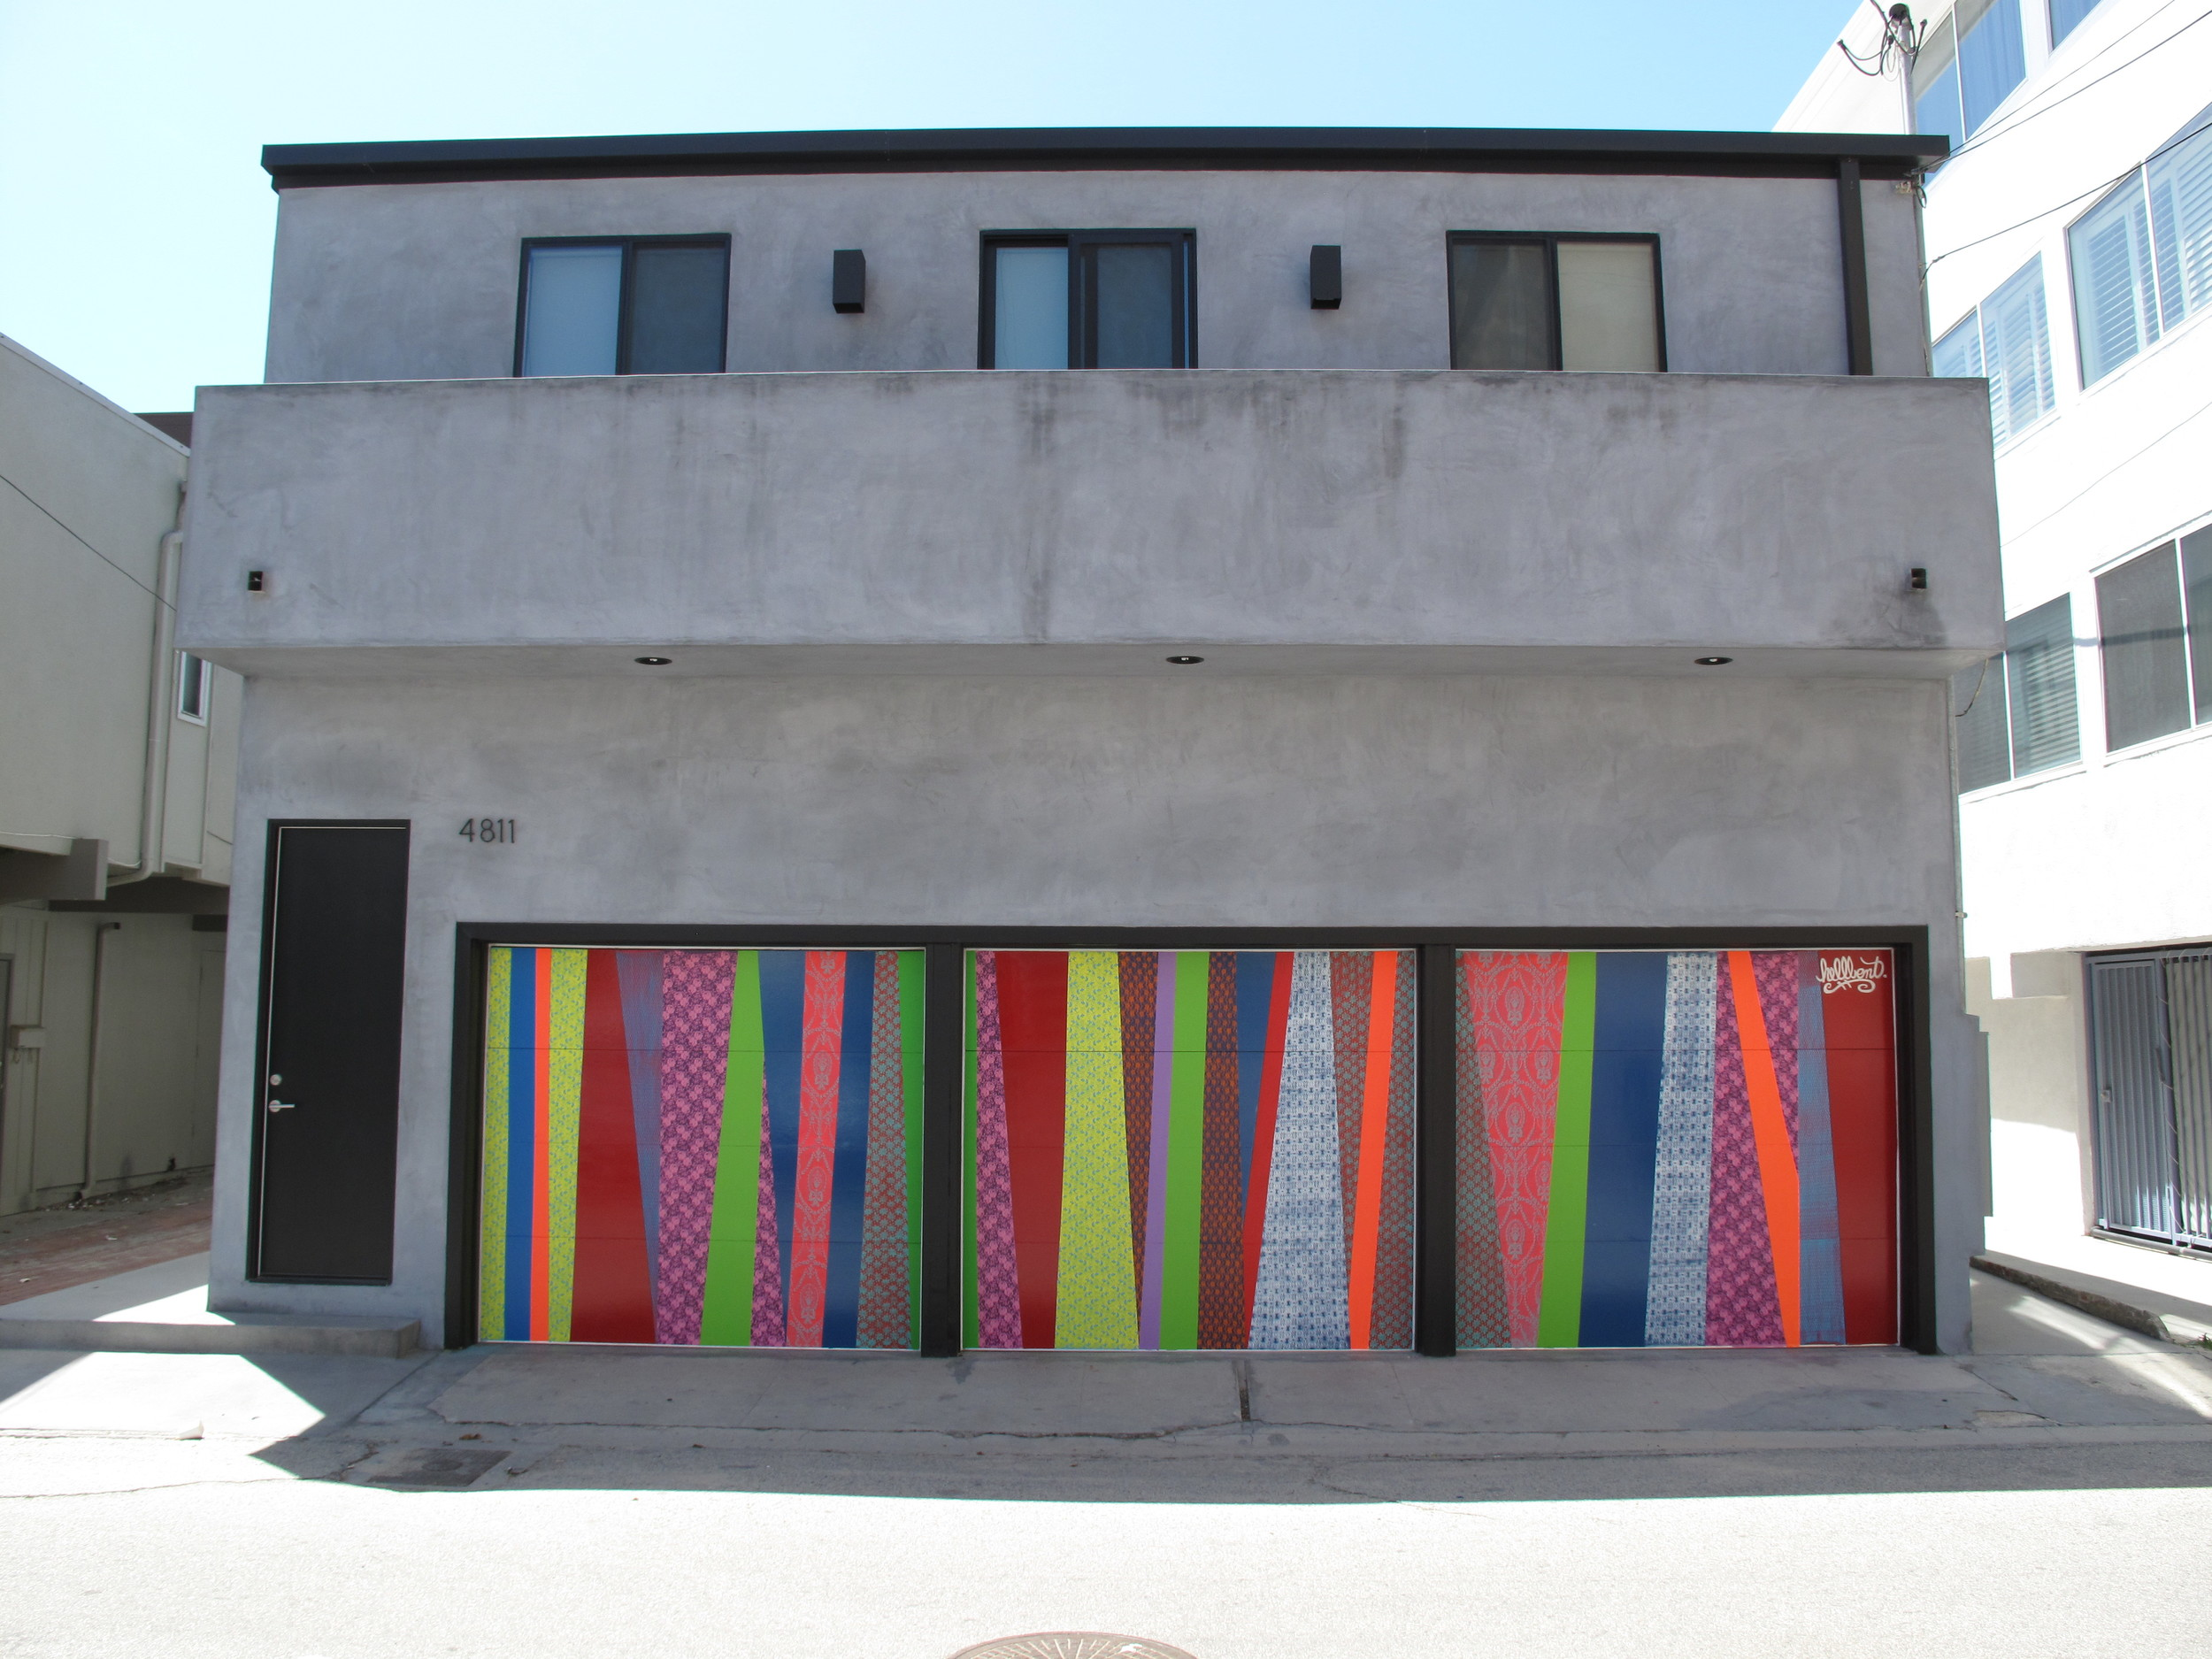 Collector's House in Venice, CA